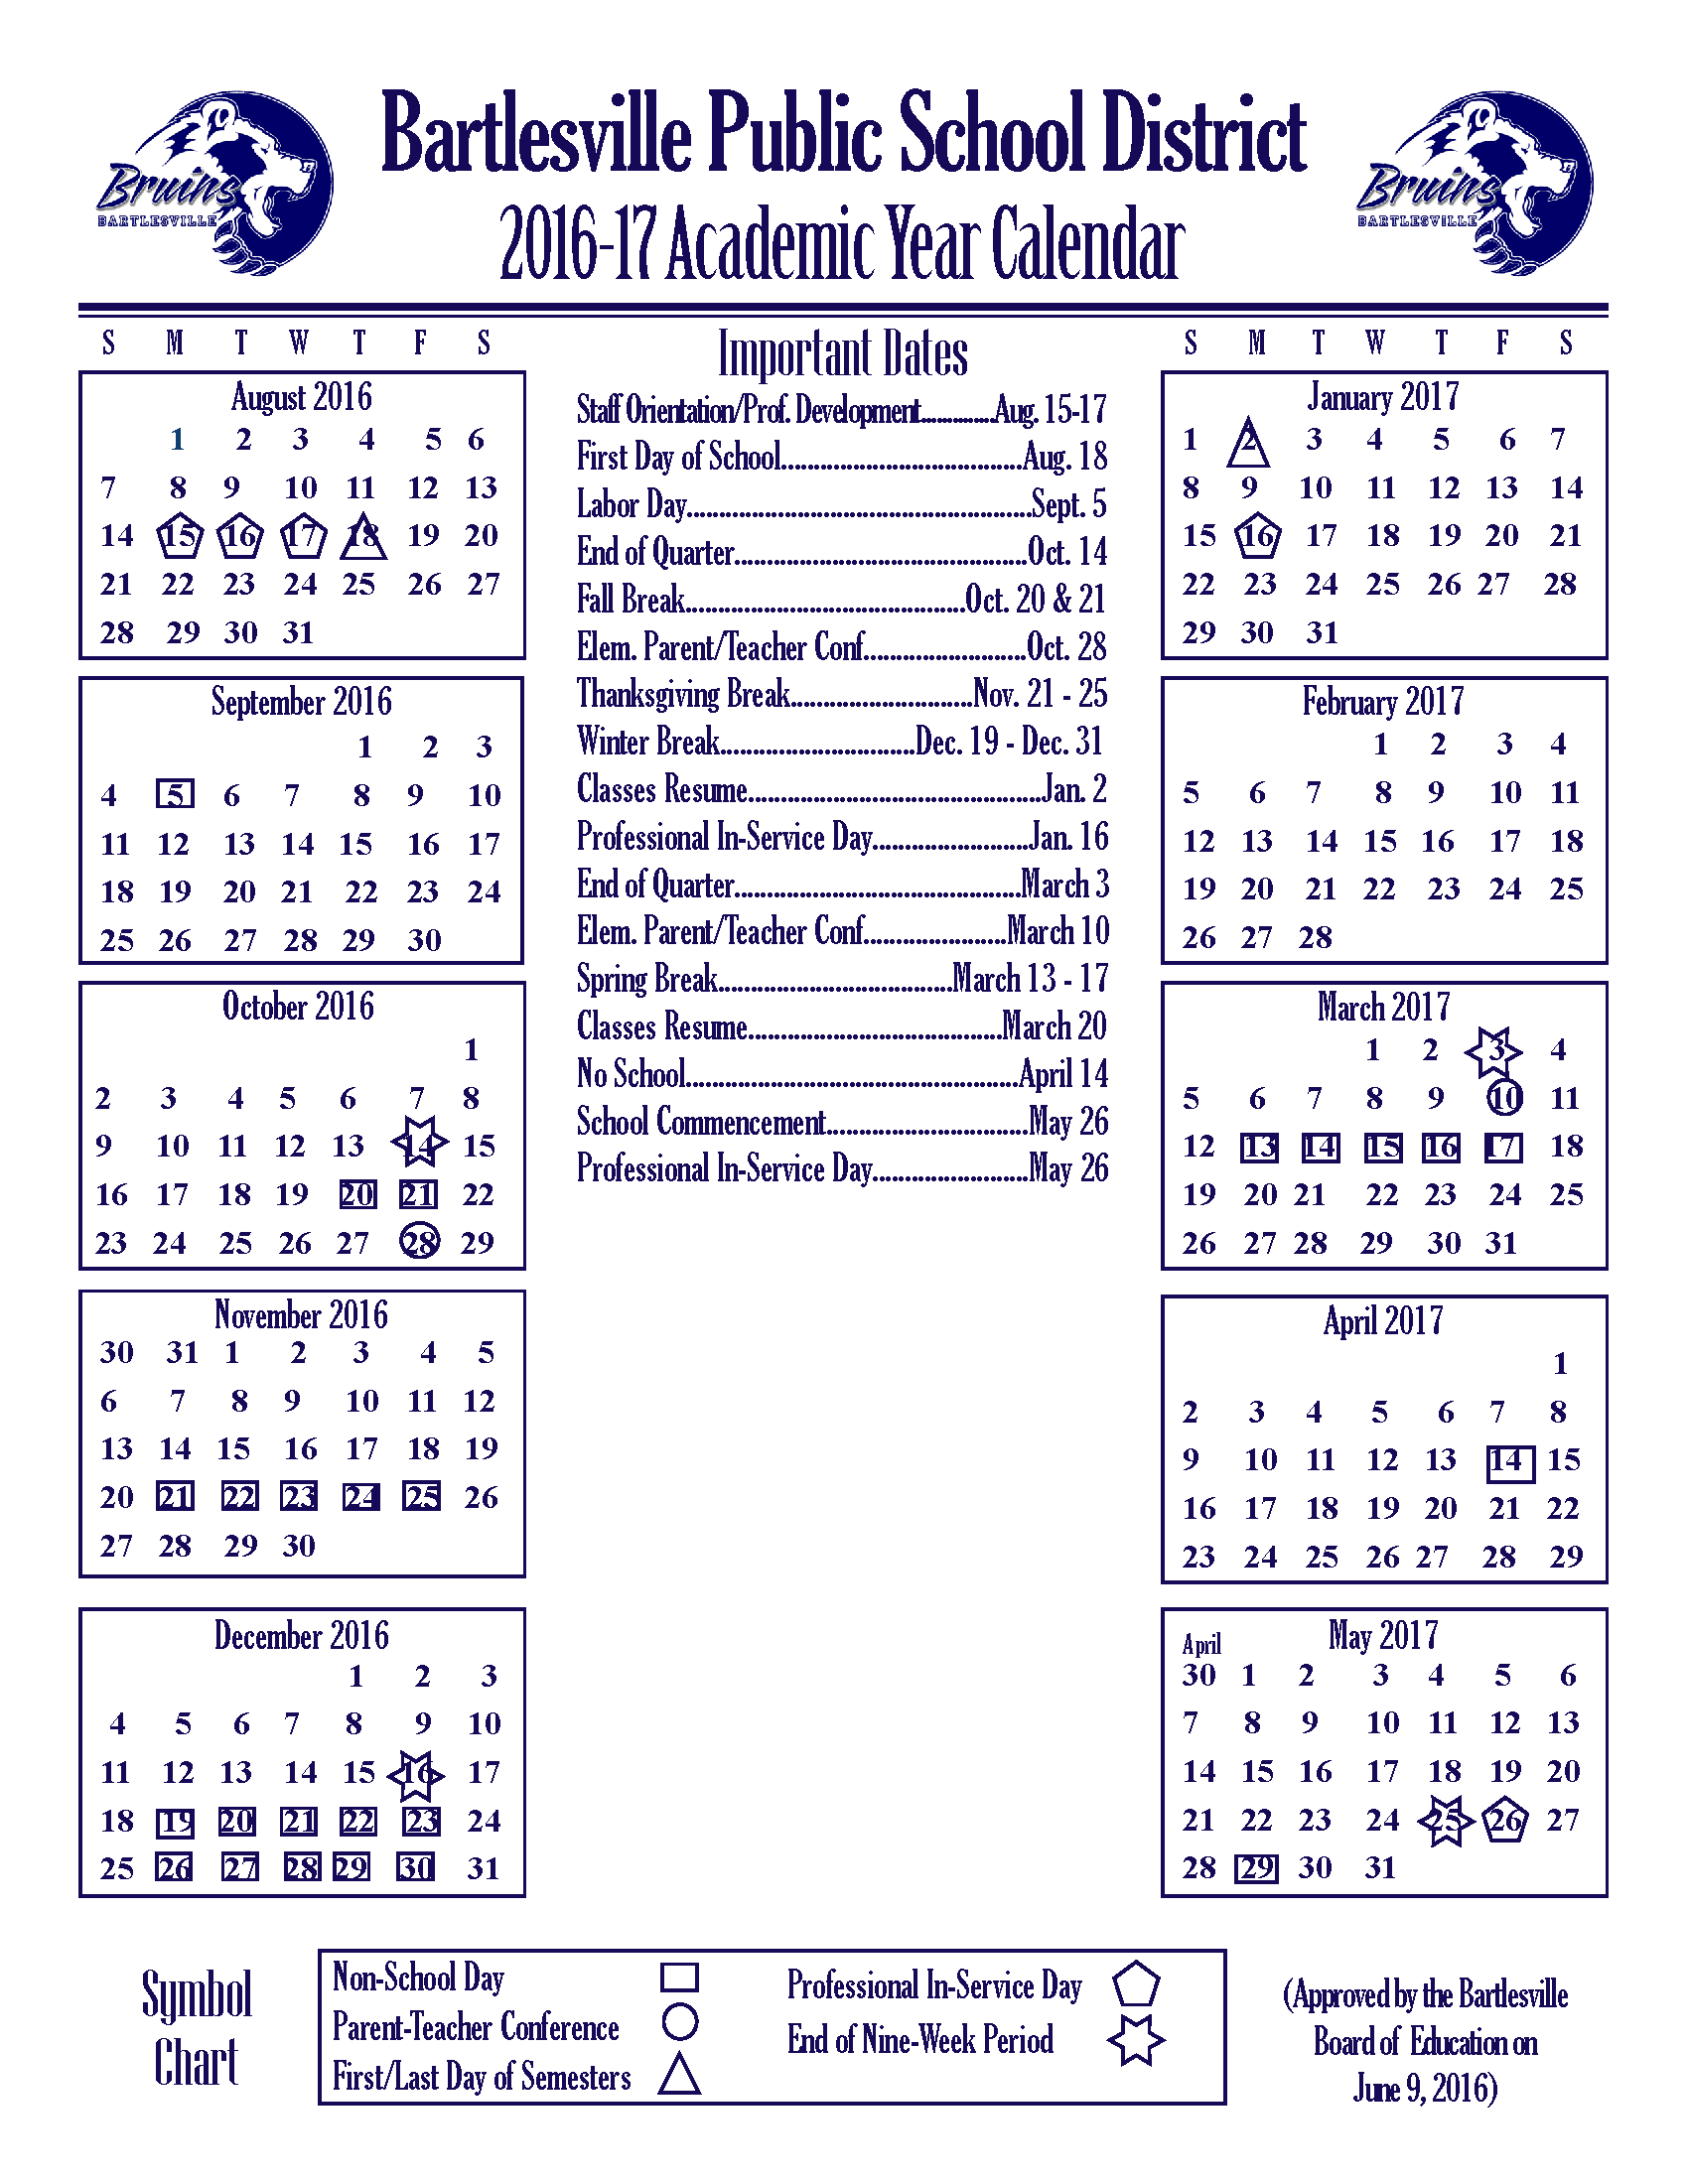 2016-2017 Academic Year Calendar Revised - Bartlesville Public Schools